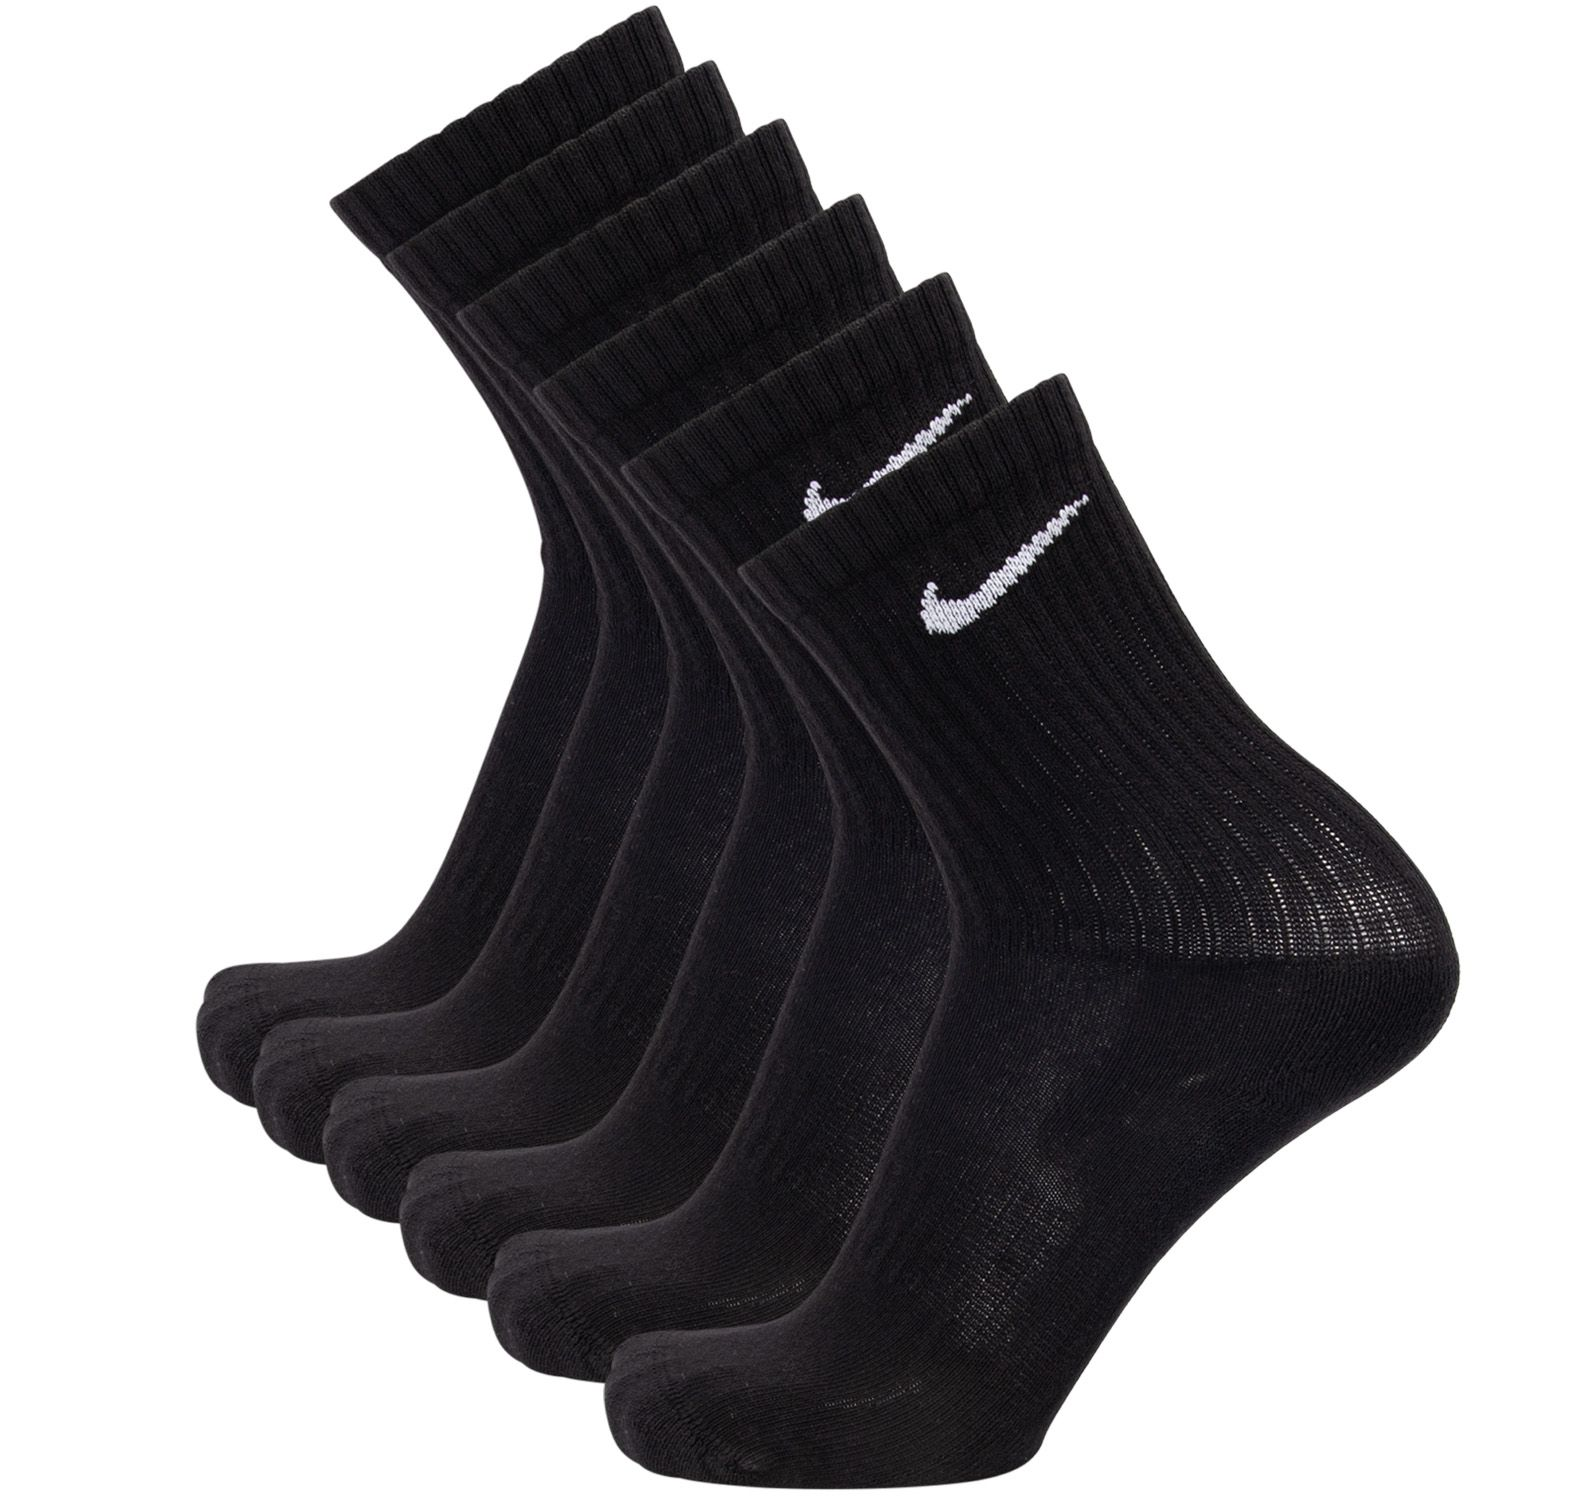 6-pack nike sportsockar cushion crew, black/white, l,  nike